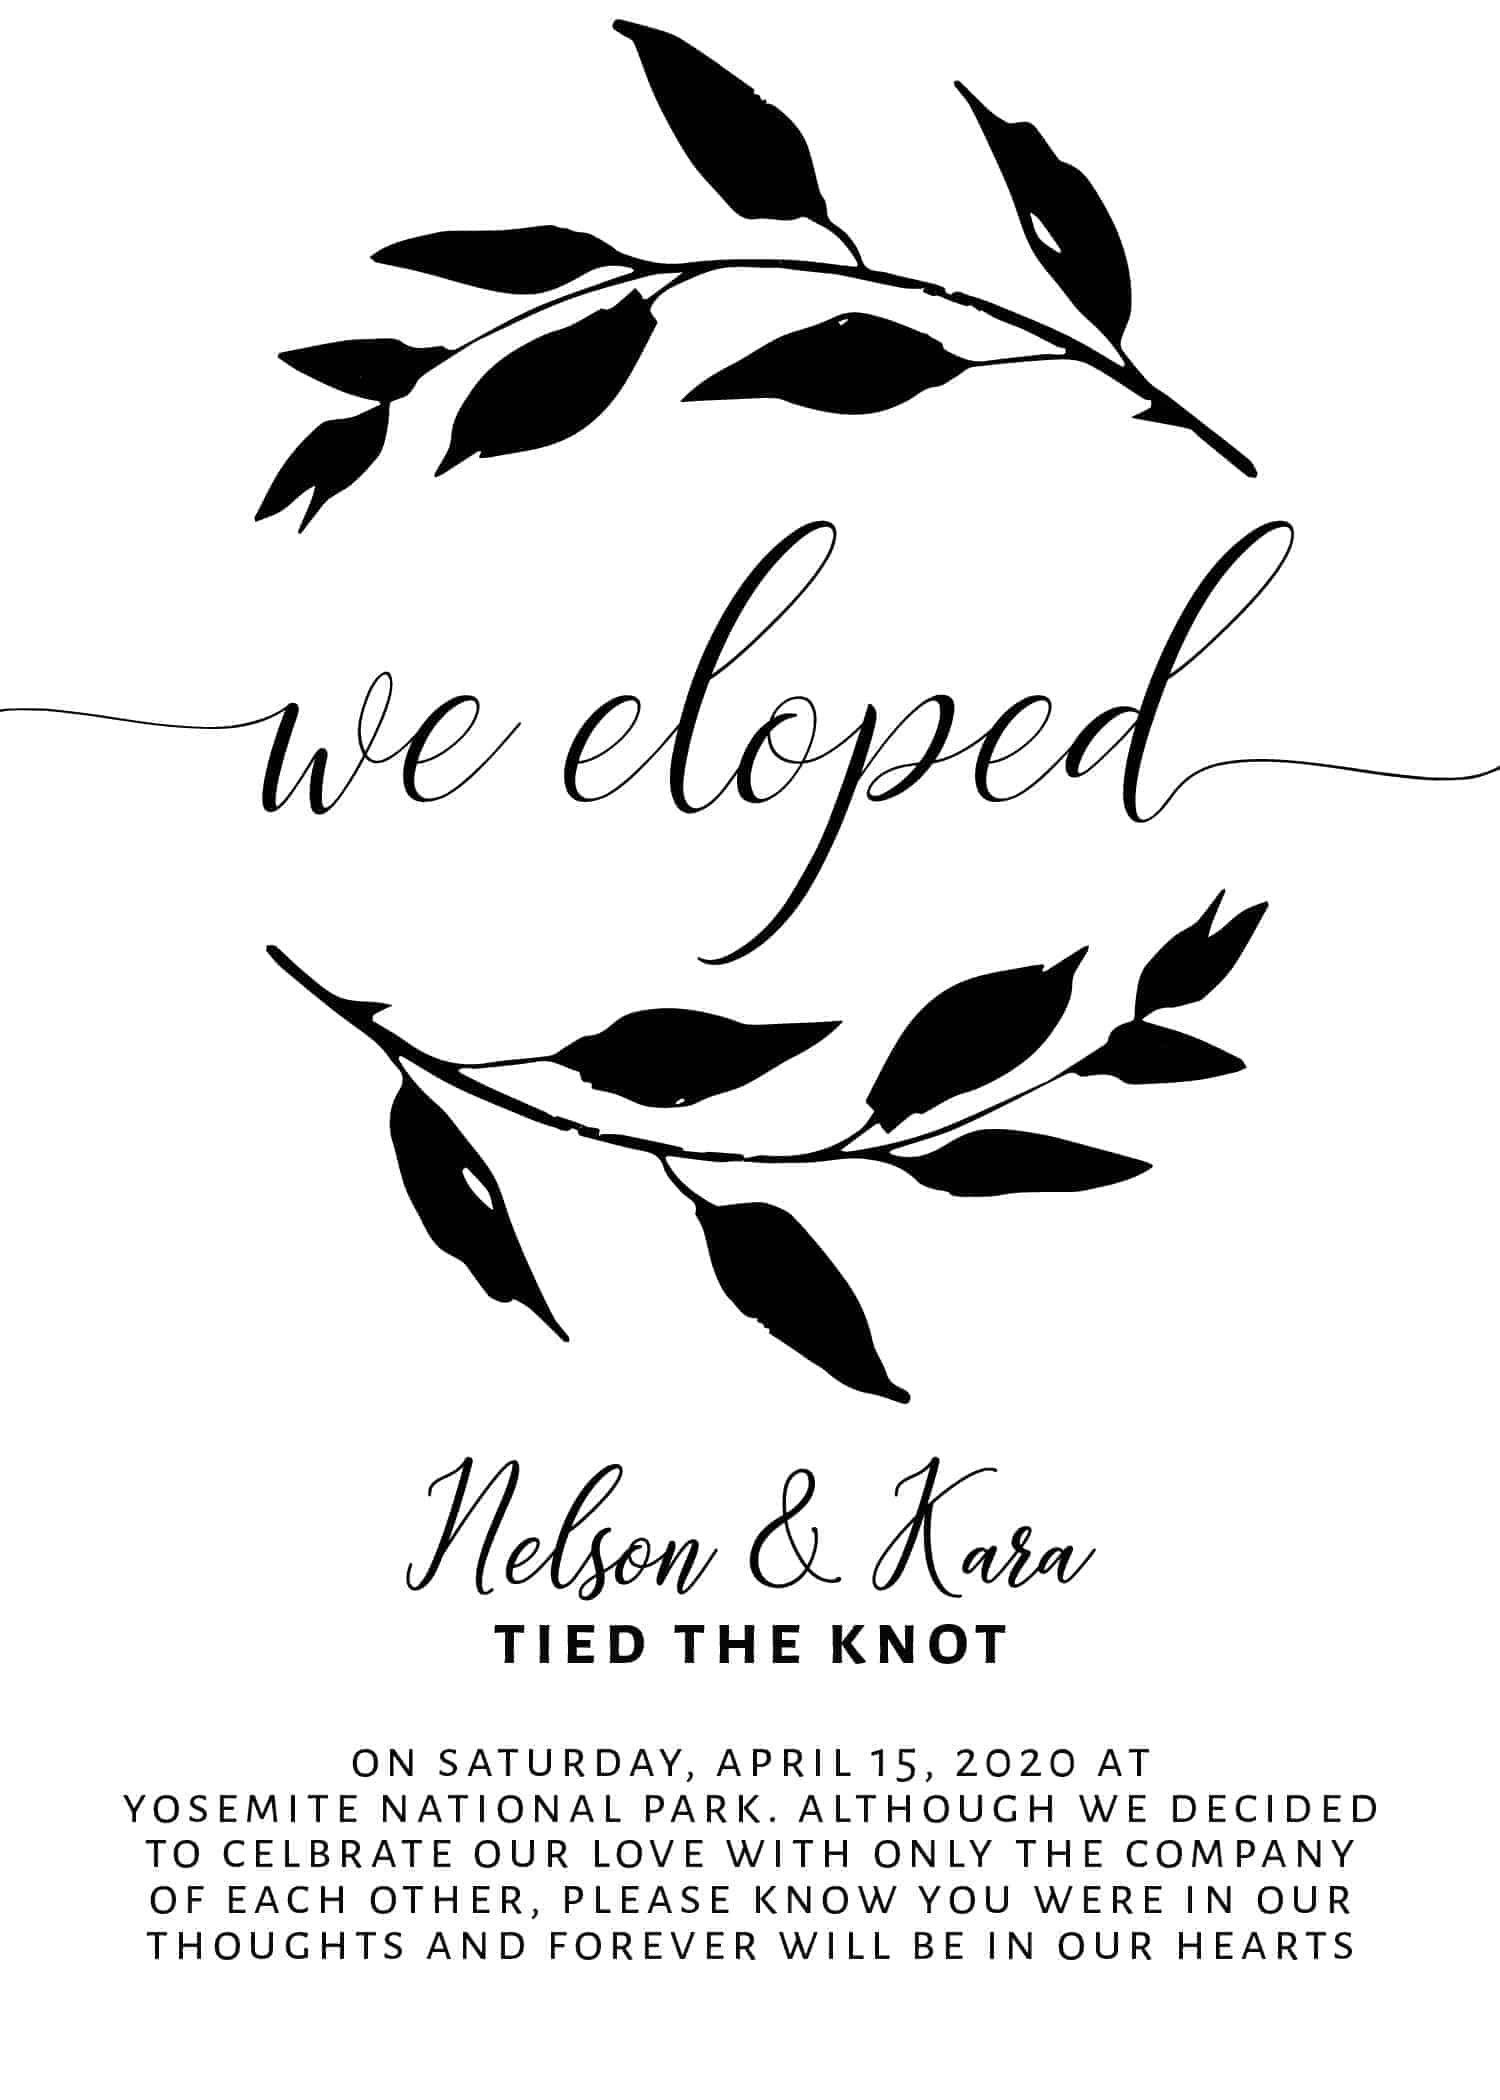 Married Announcement Card We Eloped, Wedding Announcement Cards, Printed Elopement Announcement Cards Tied The Knot